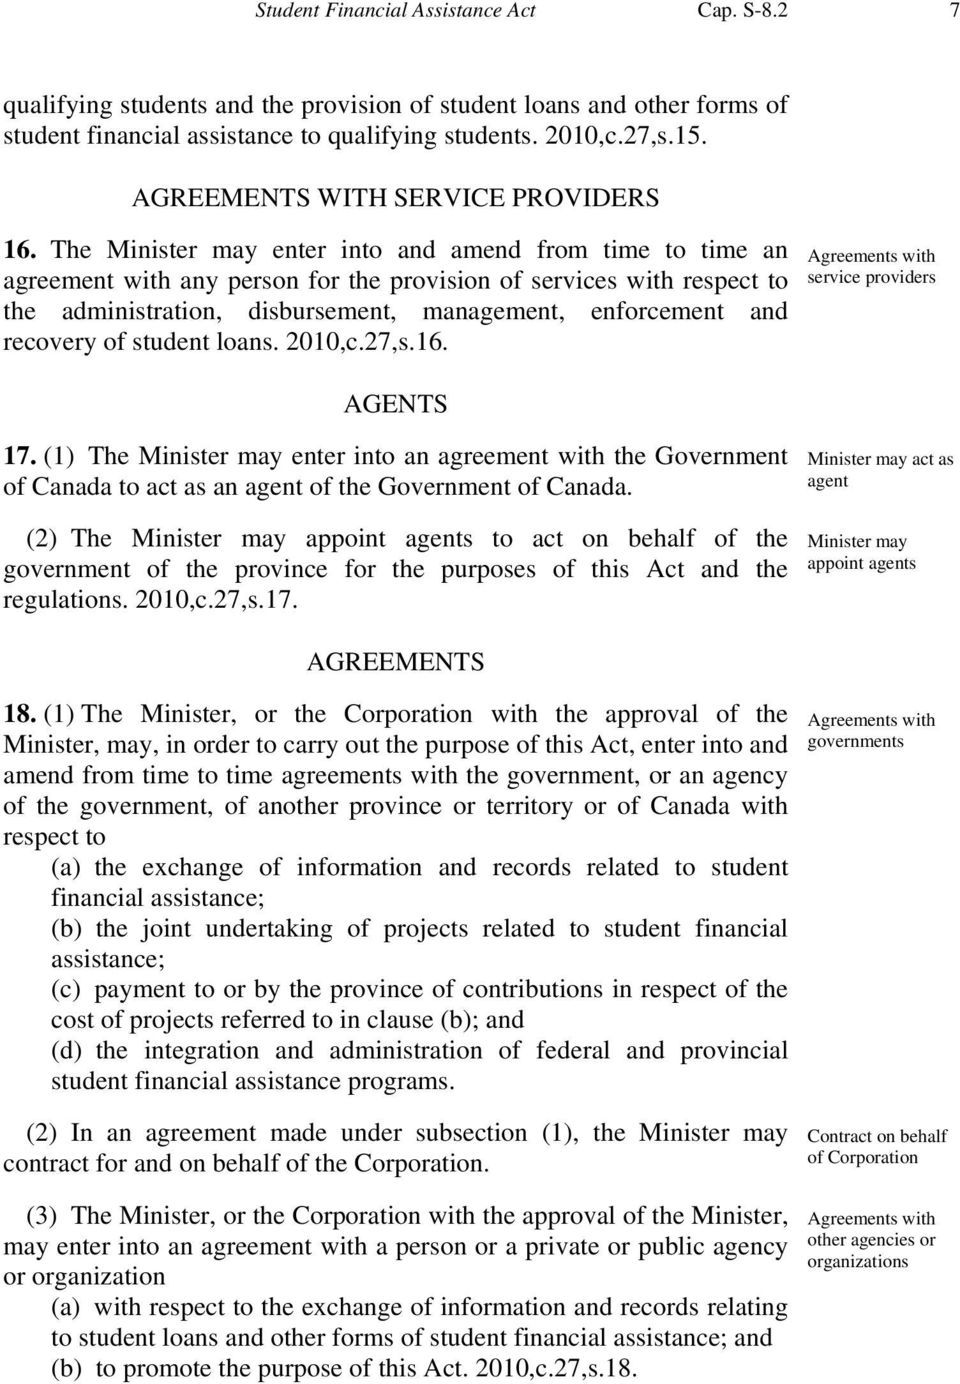 The Minister may enter into and amend from time to time an agreement with any person for the provision of services with respect to the administration, disbursement, management, enforcement and